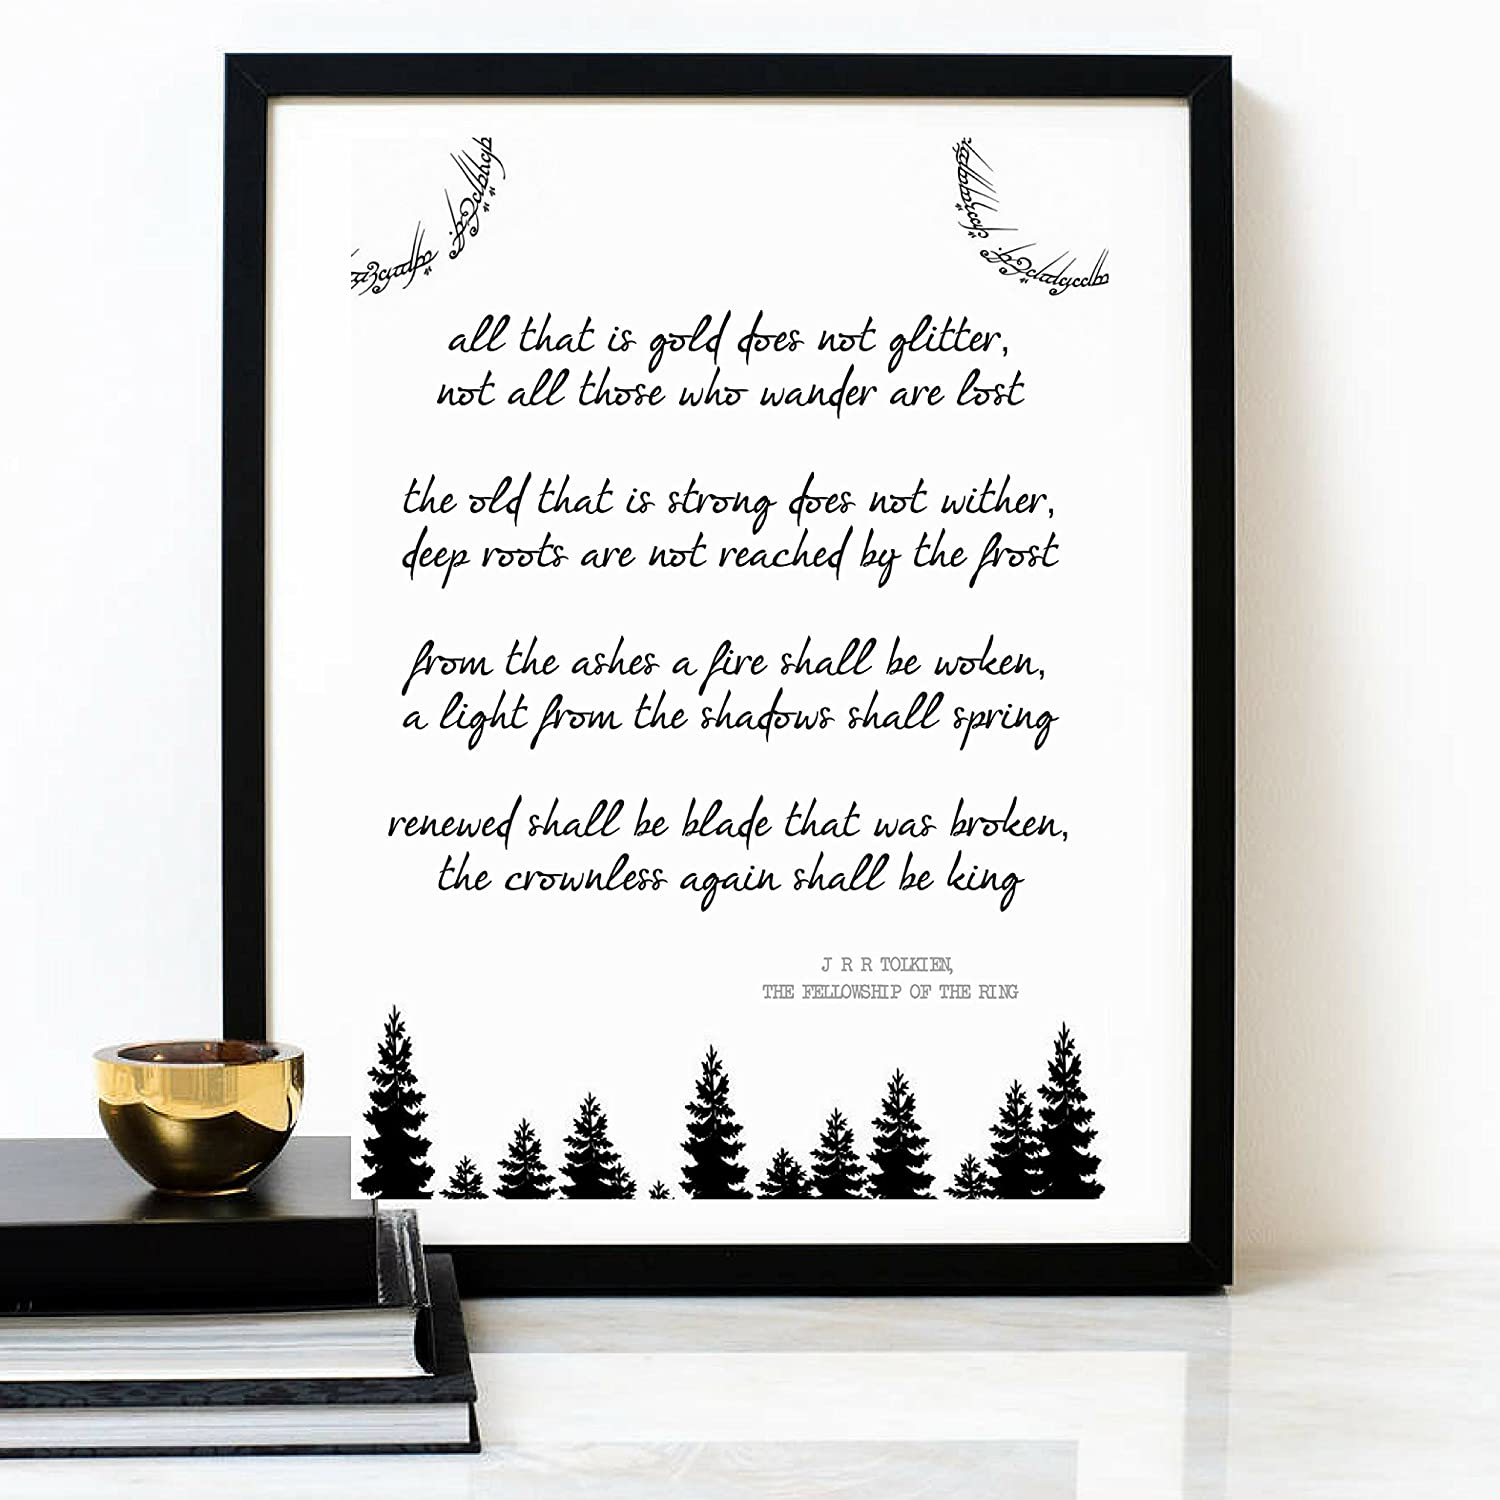 JRR TOLKIEN Poem - All That Is Gold Does Not Glitter Fellowship Of The Ring - Poetry Quote Print – Inspirational Quote - Typography Poster – Minimalist Wall Art